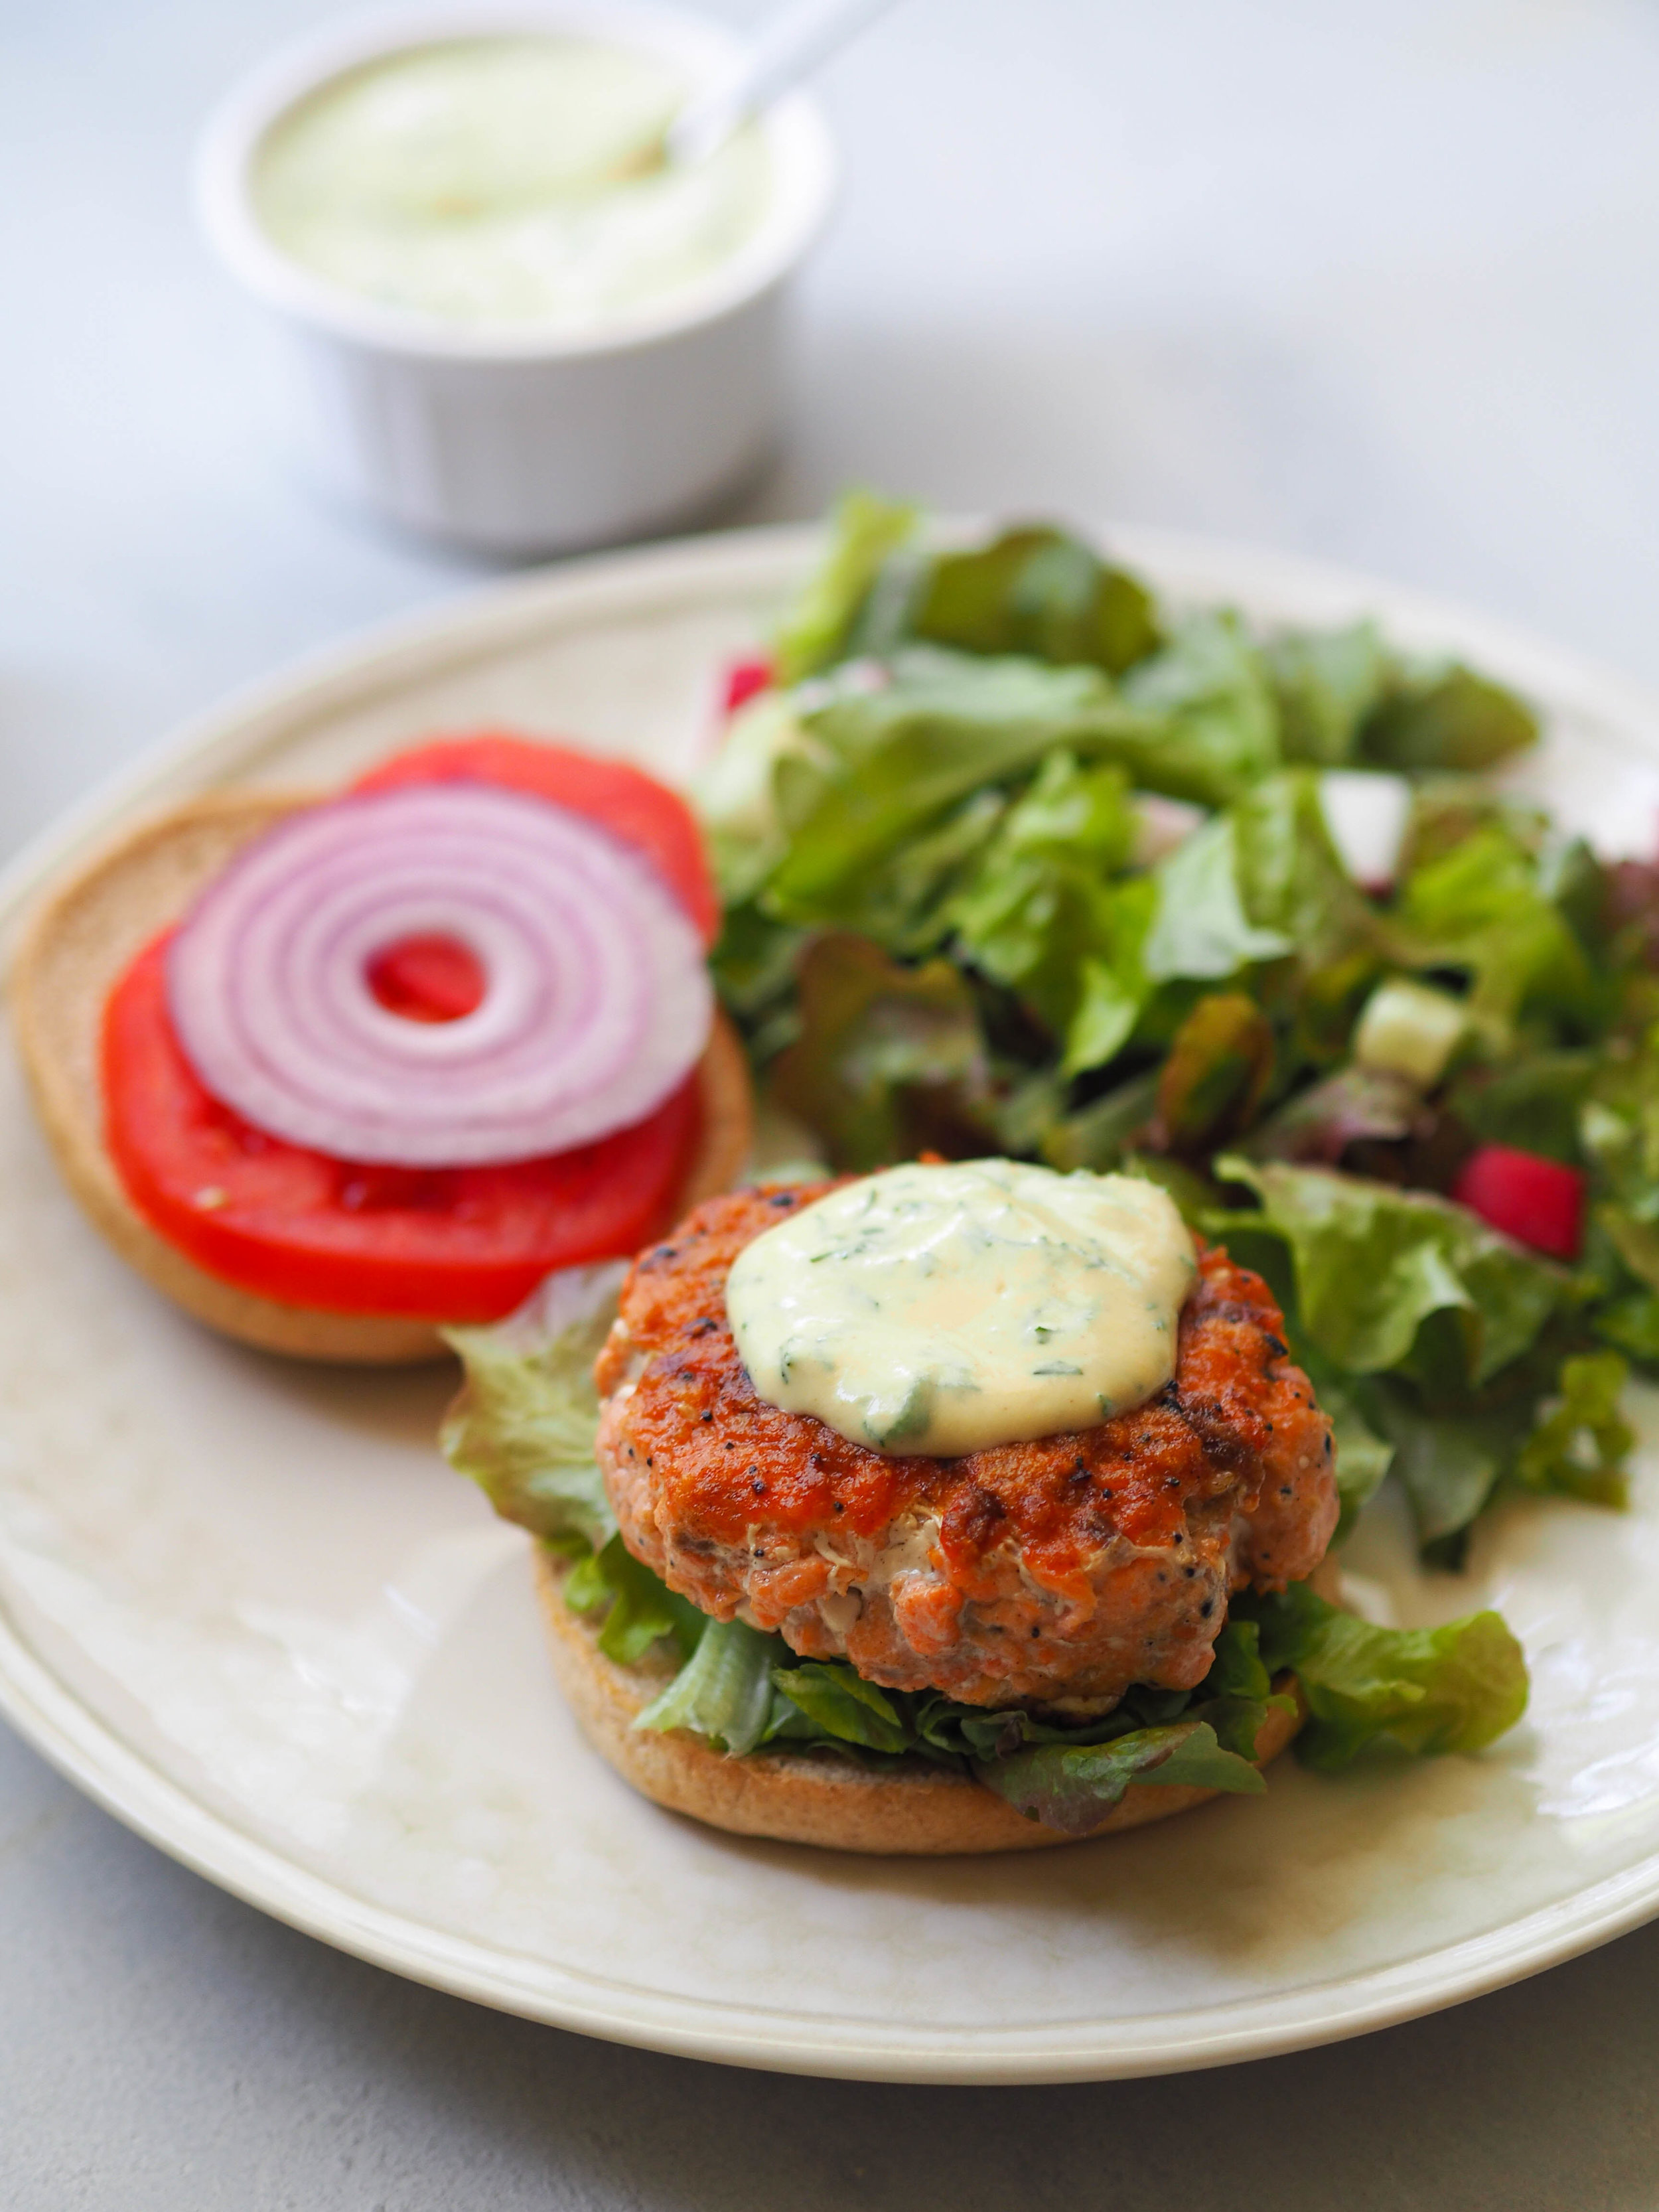 Everything Bagel Salmon Burger with Creamy Mustard-Dill Sauce! It's really easy to make for a weeknight! #burger #salmon #easyrecipe